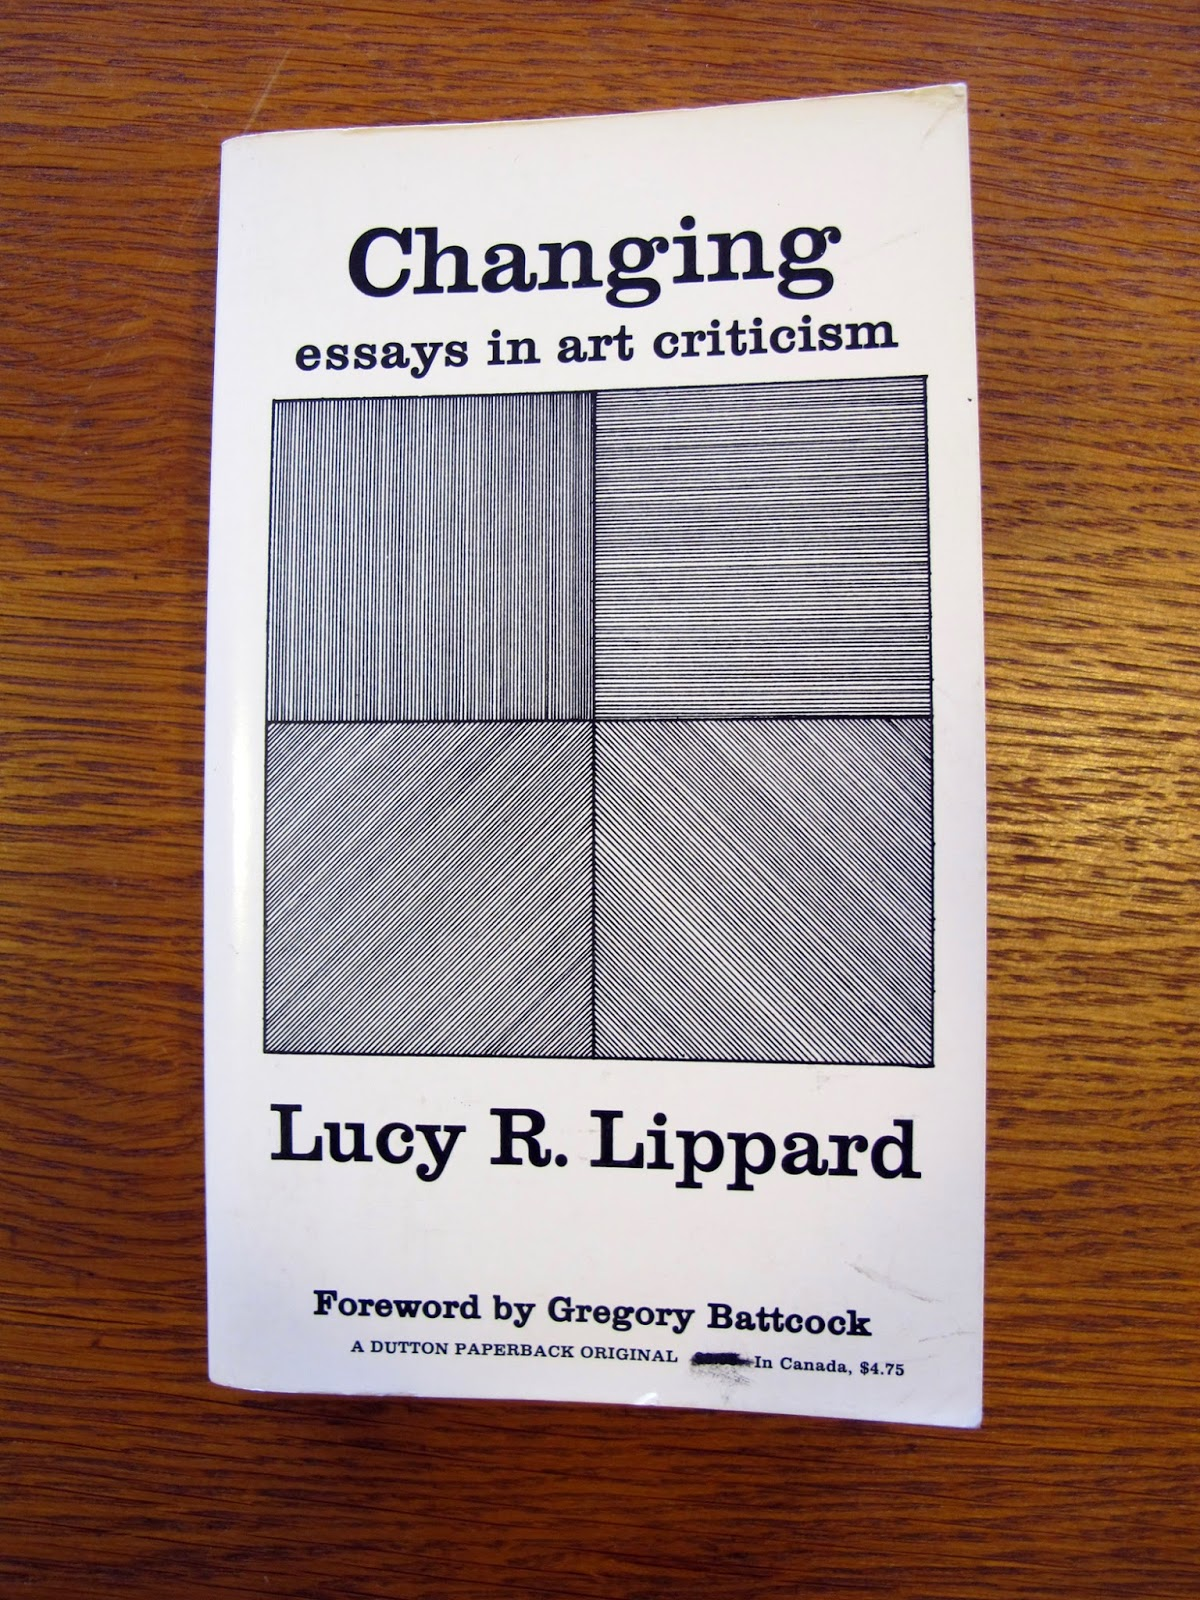 lucy lippard eccentric abstraction essay In their 1968 essay the dematerialization of art, john chandler and lucy r lippard argued that the developments of conceptualism would transform art criticism it opens with selected objects from lippard's post-minimalist exhibition eccentric abstraction (1966), some of which were also.